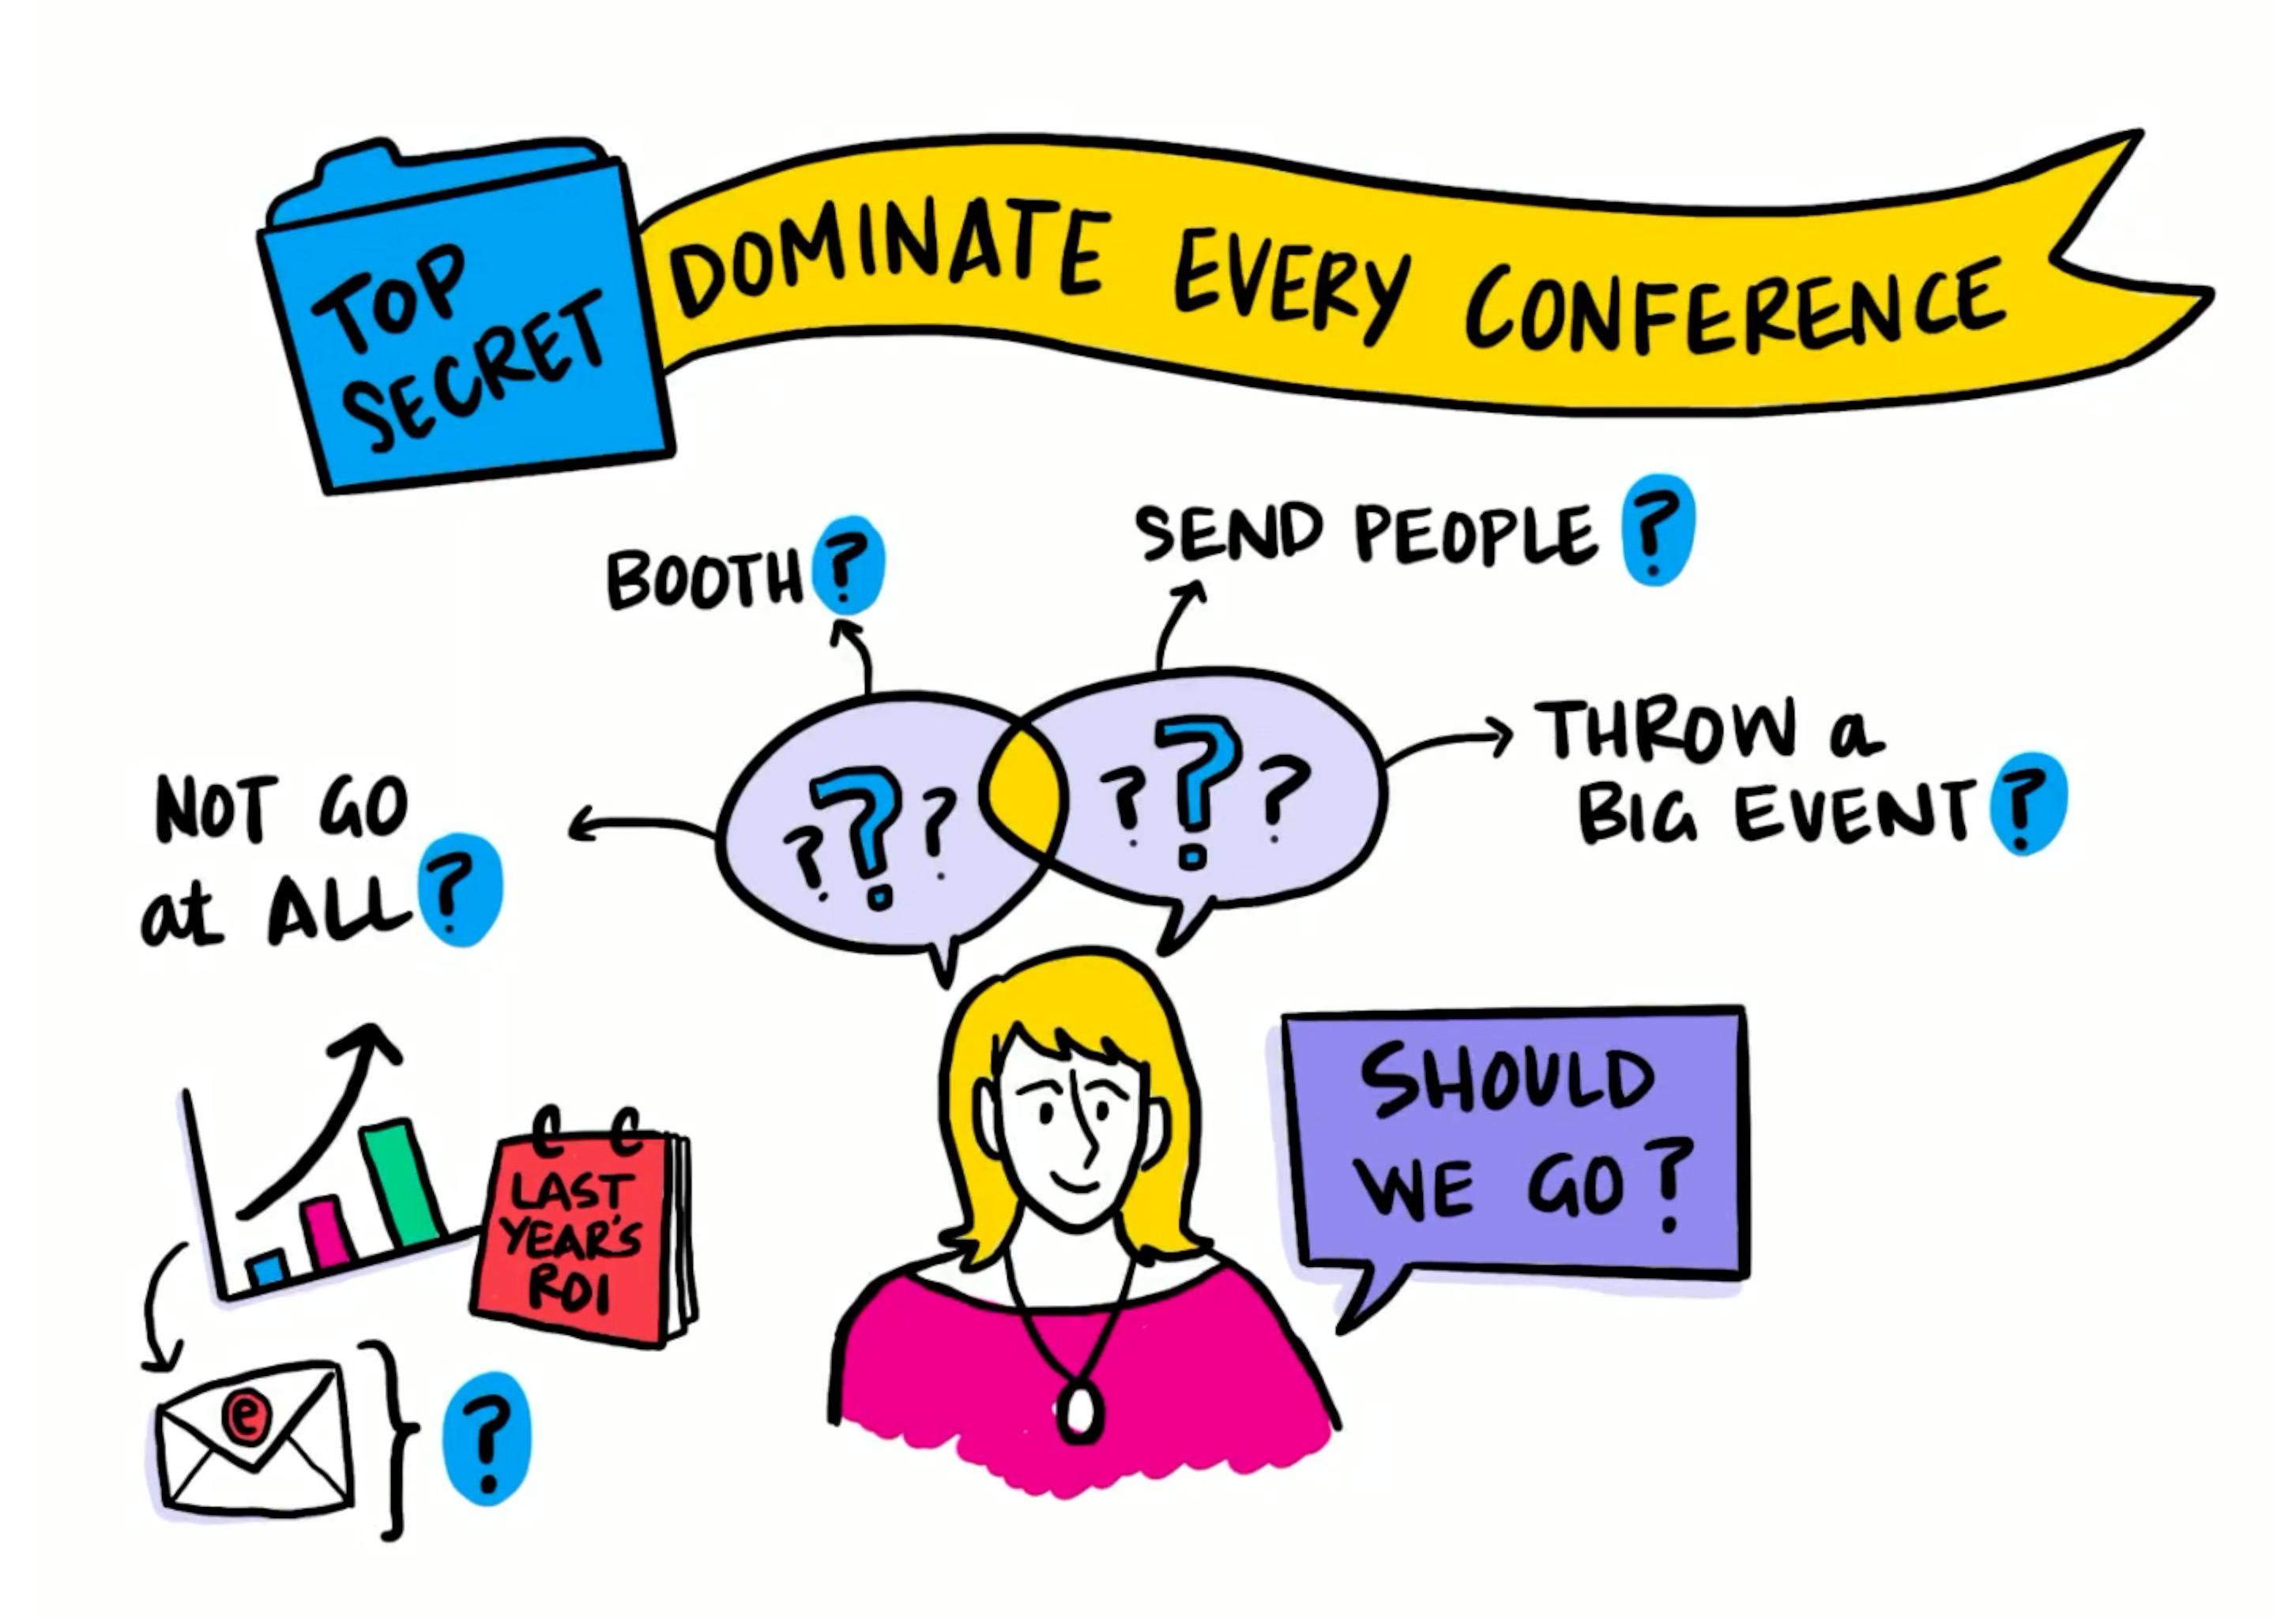 book trade shows conference strategy